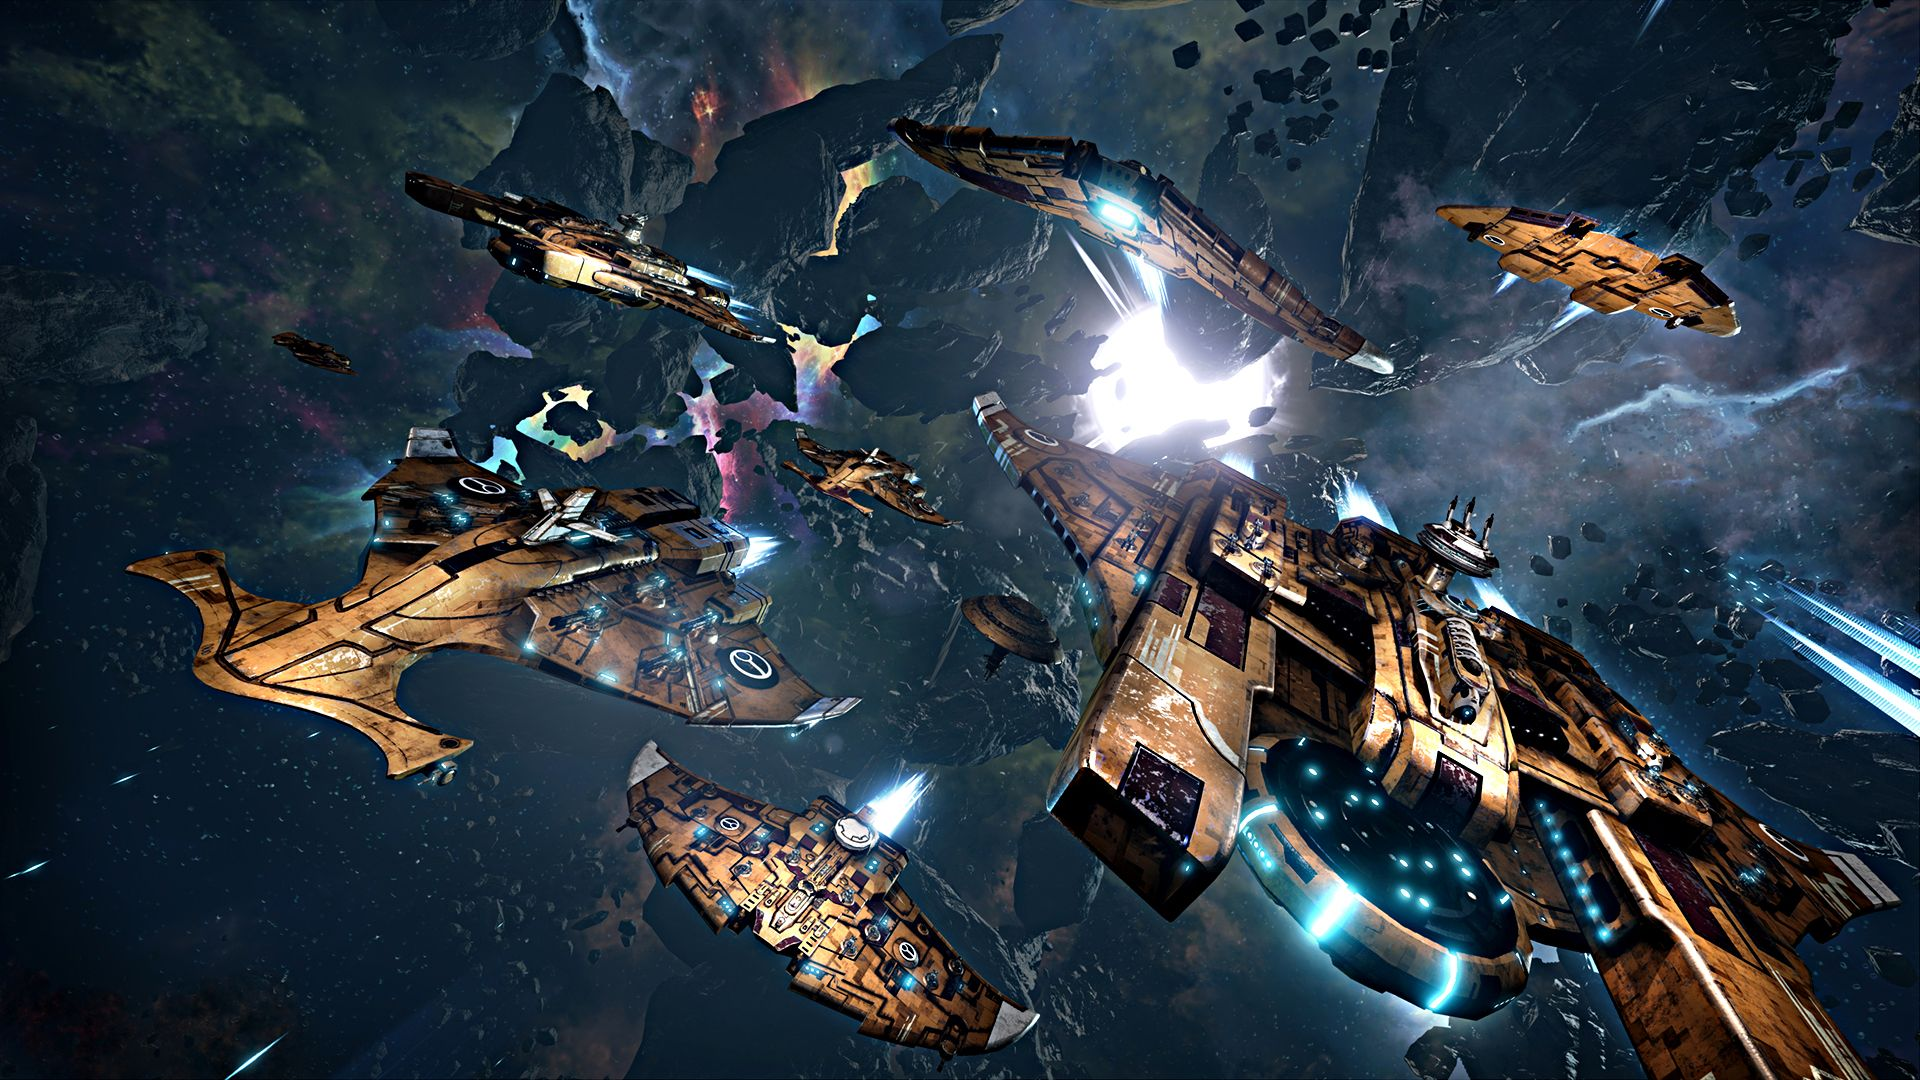 battlefleet-gothic-screenshot-10